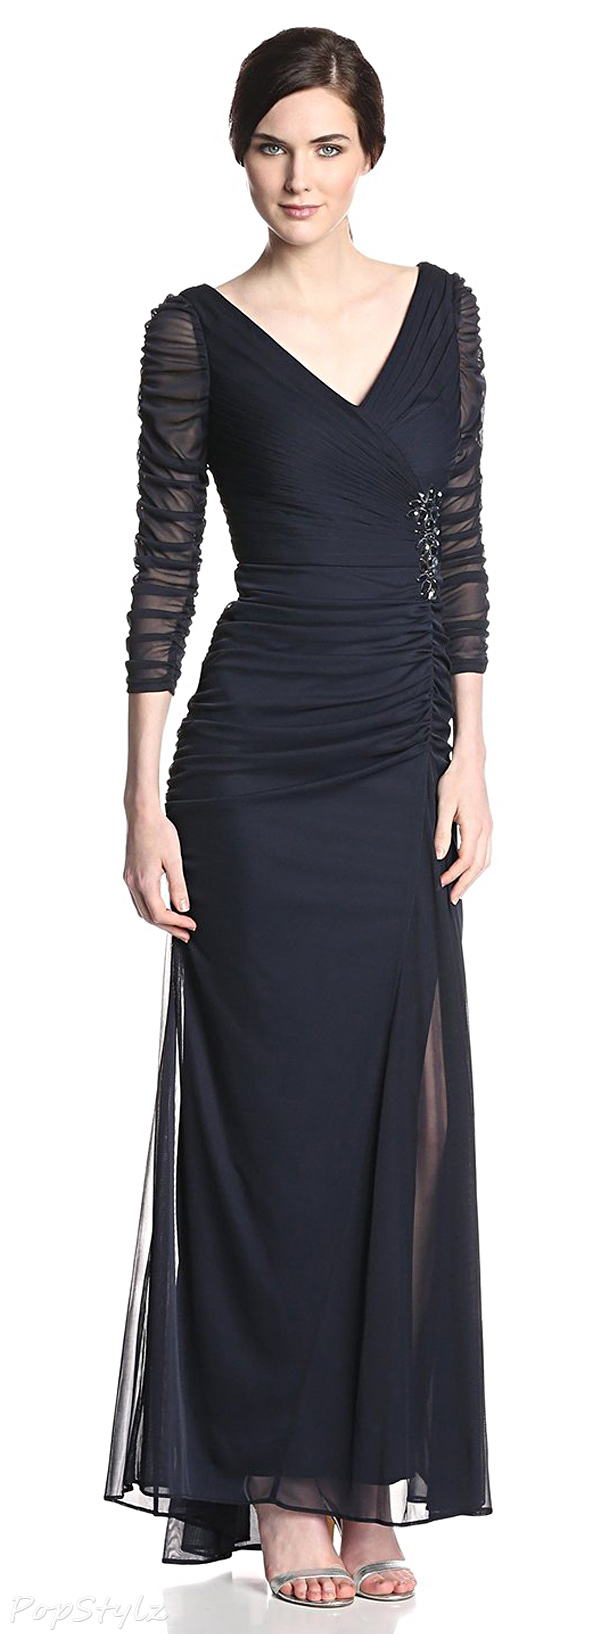 Adrianna Papell Three-Quarter Sleeve Evening Gown